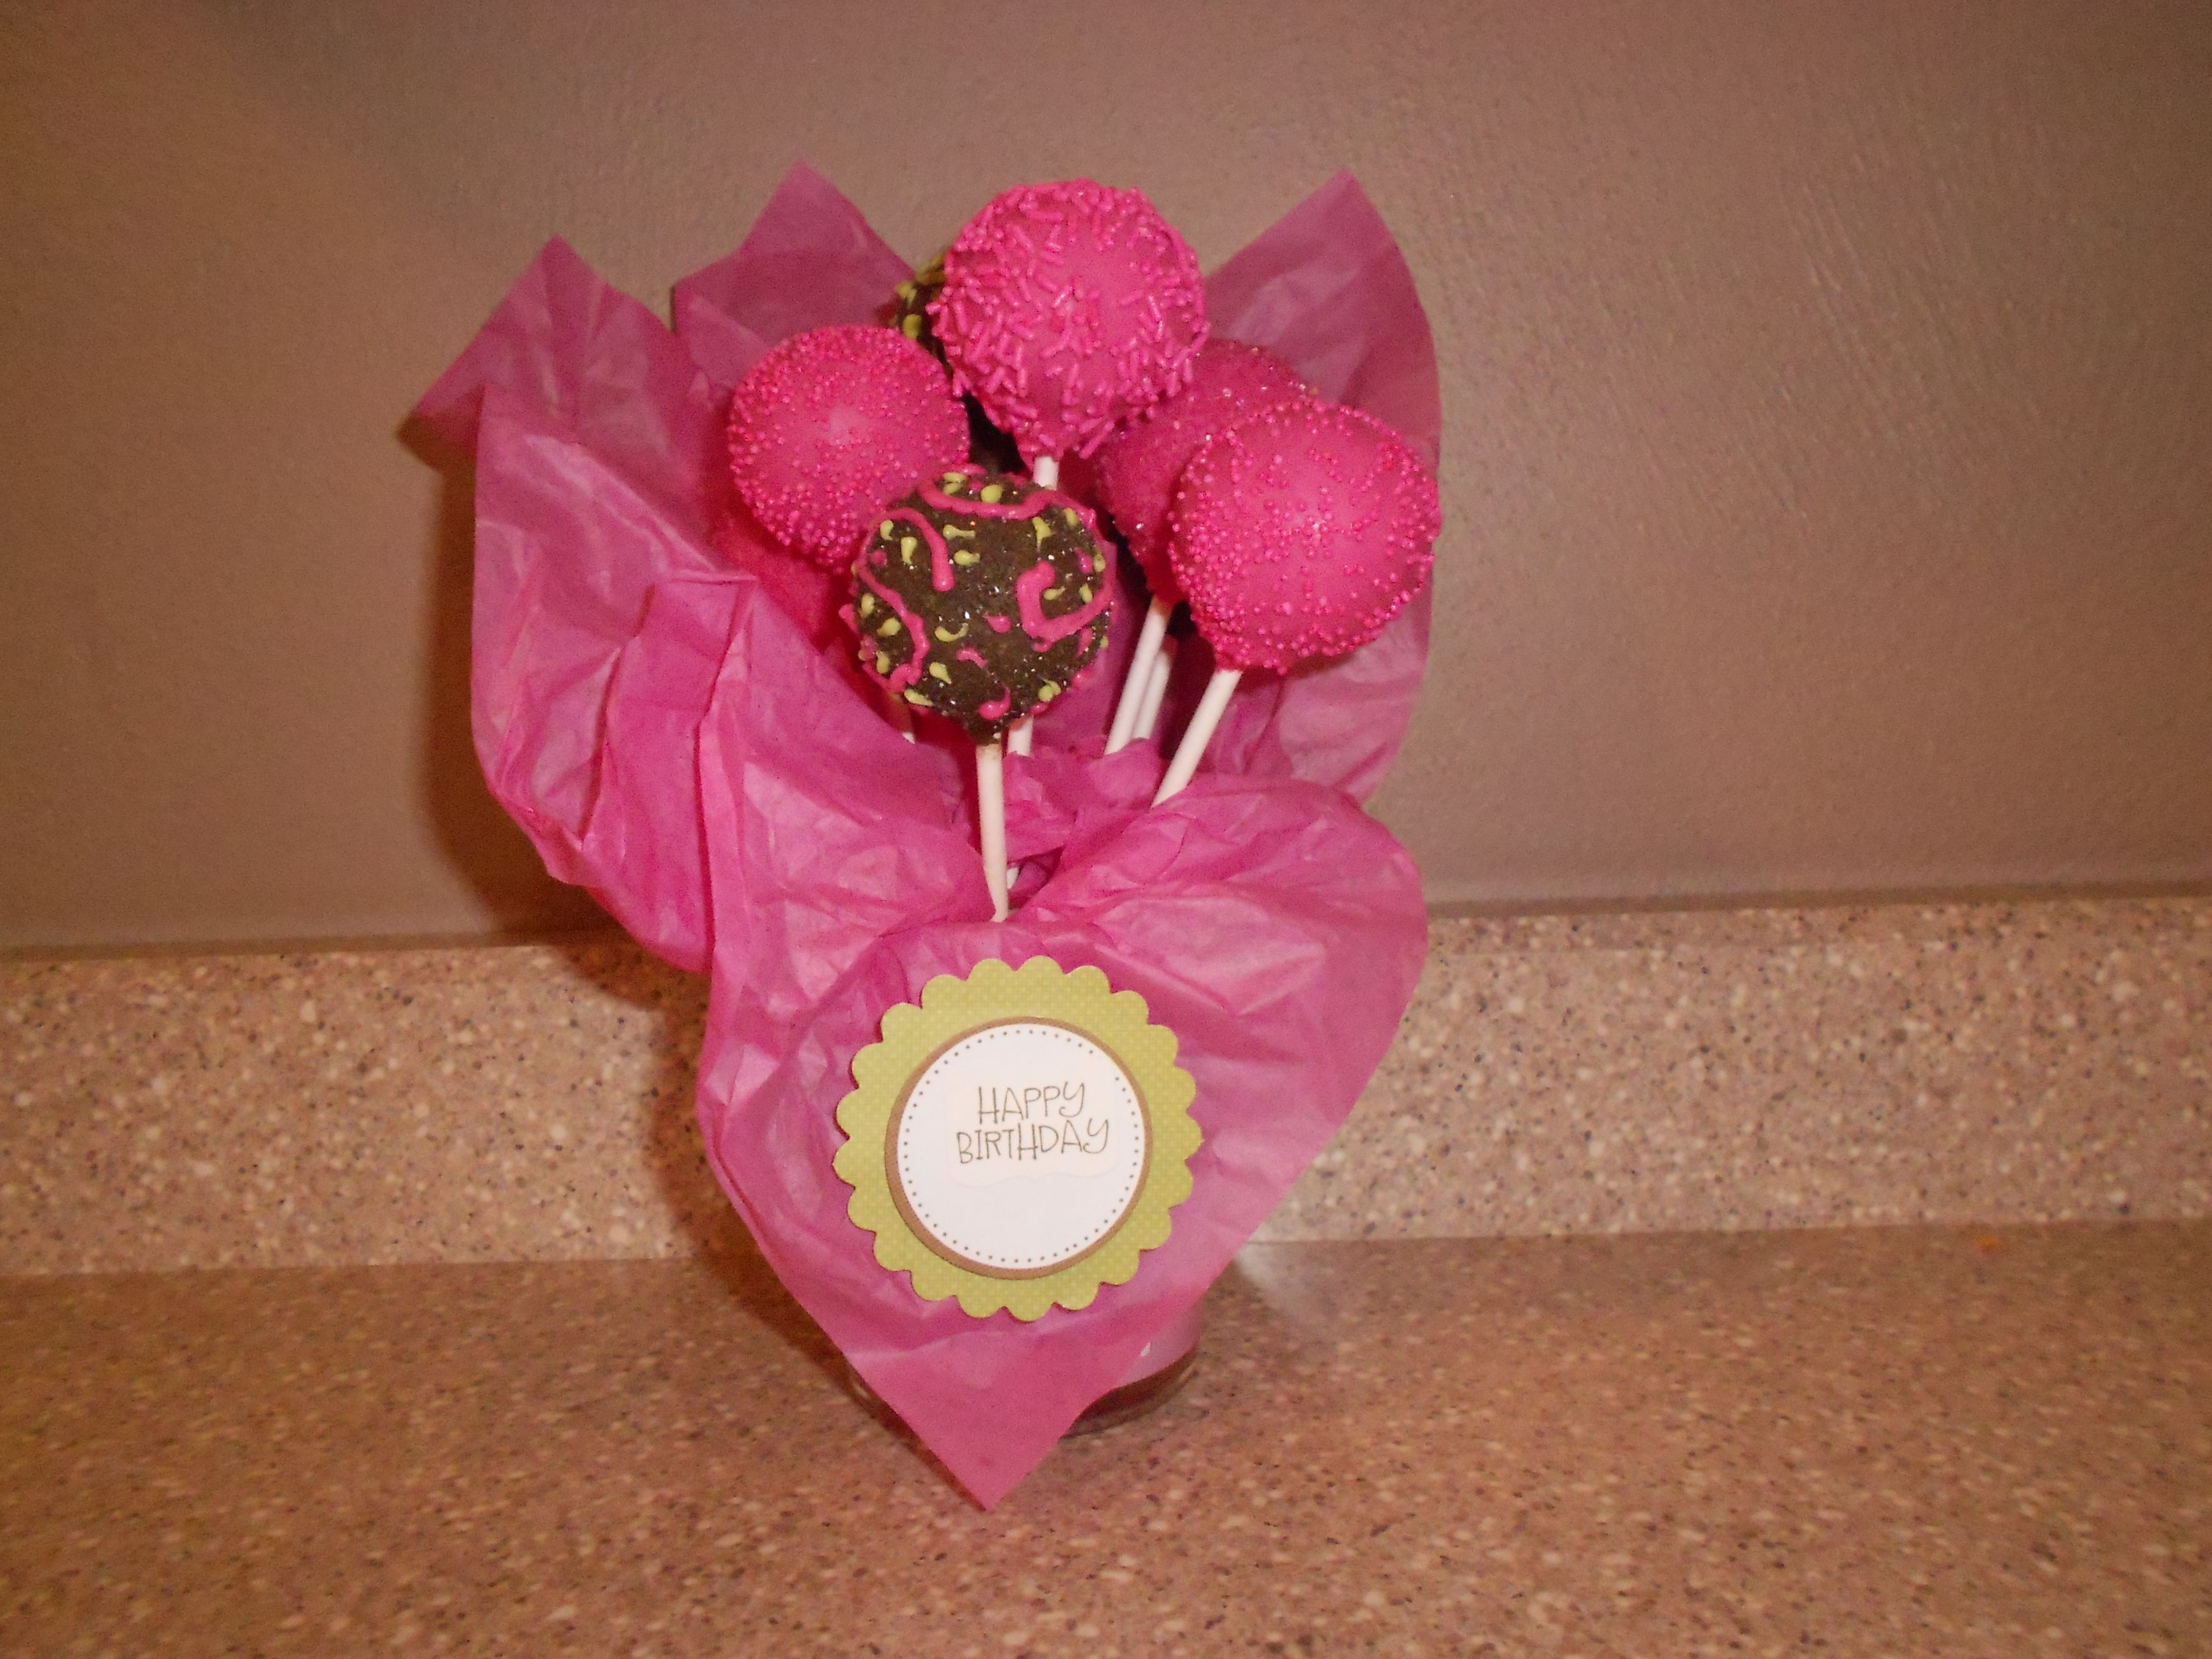 Shades of pink and brown chocolate cake pops!  Made by Susan Moulden